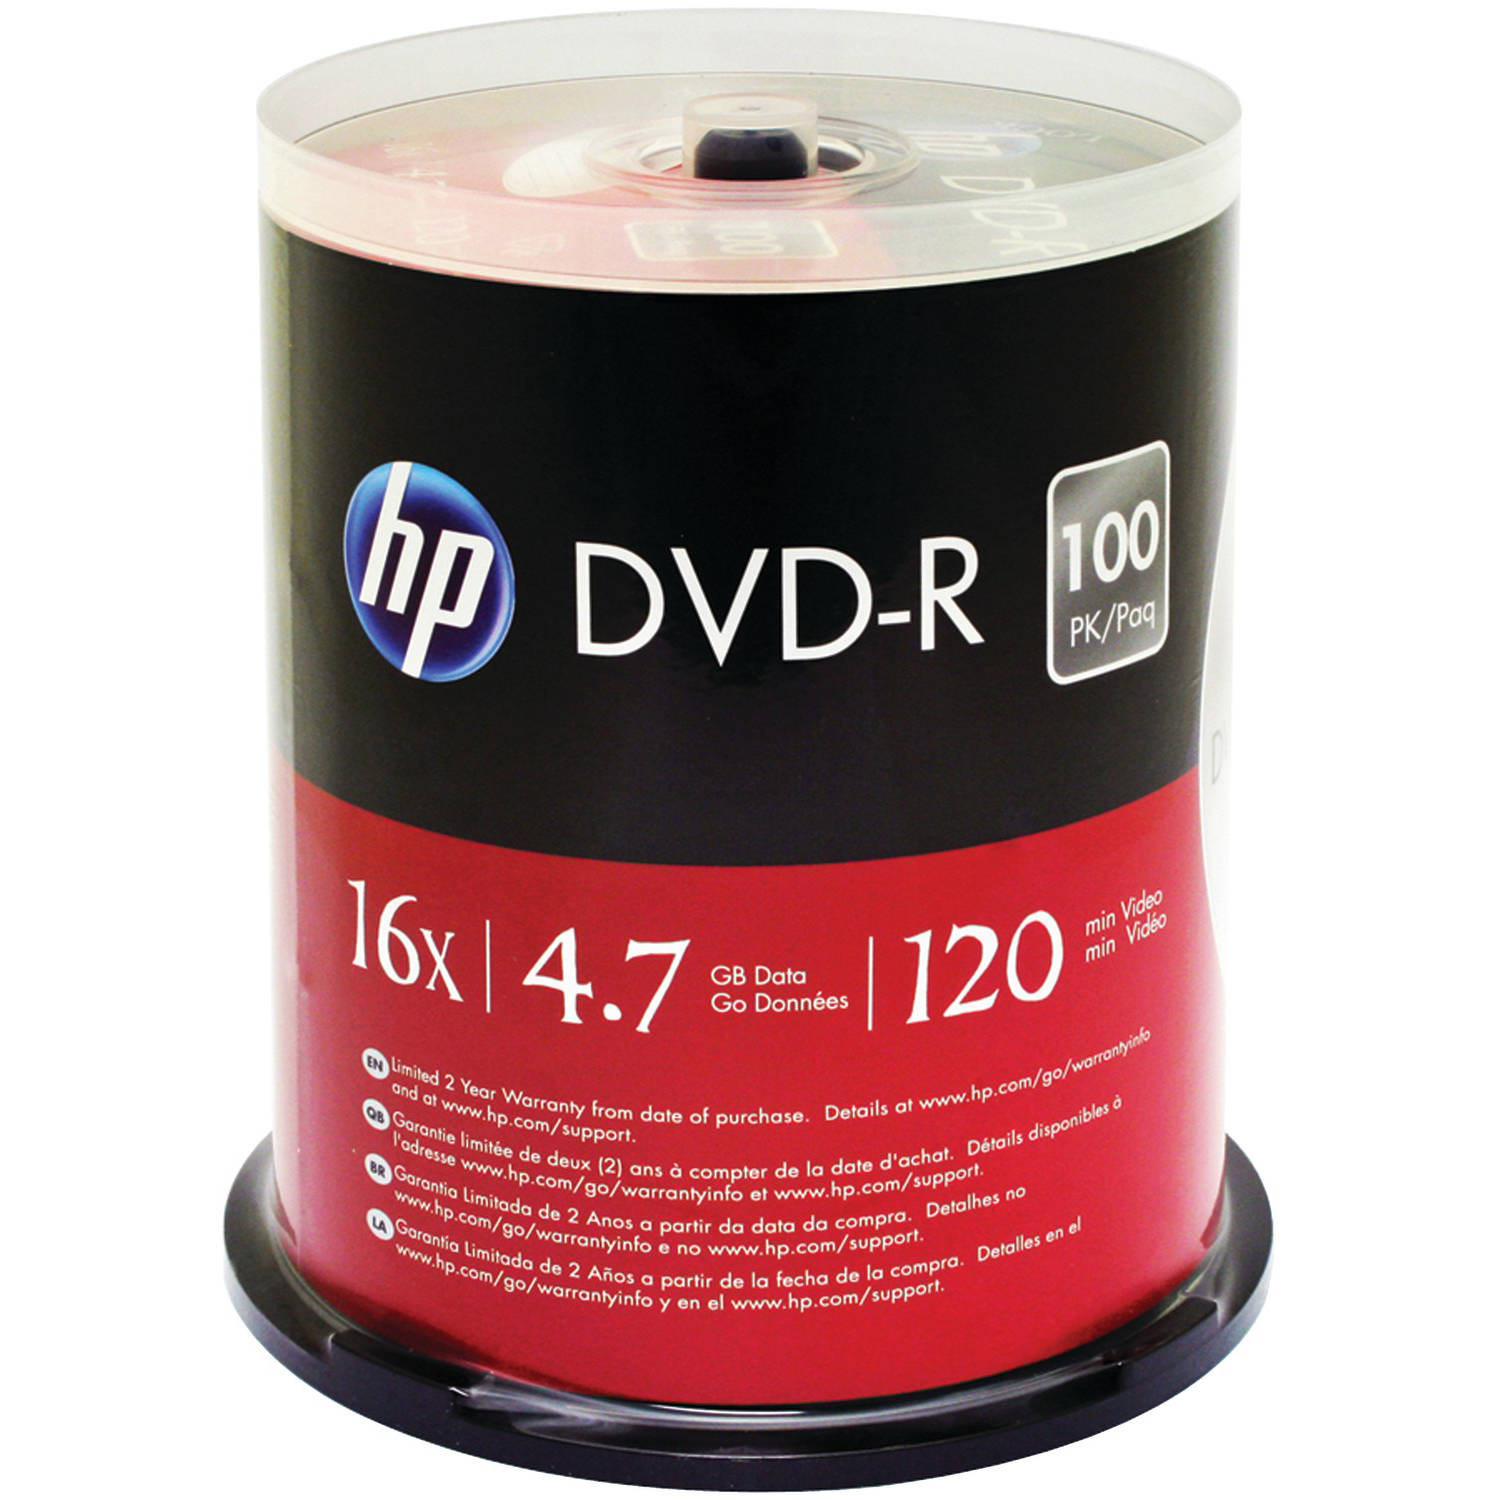 HP Dm16100cb 4.7GB DVD-rs, 100-ct Spindle